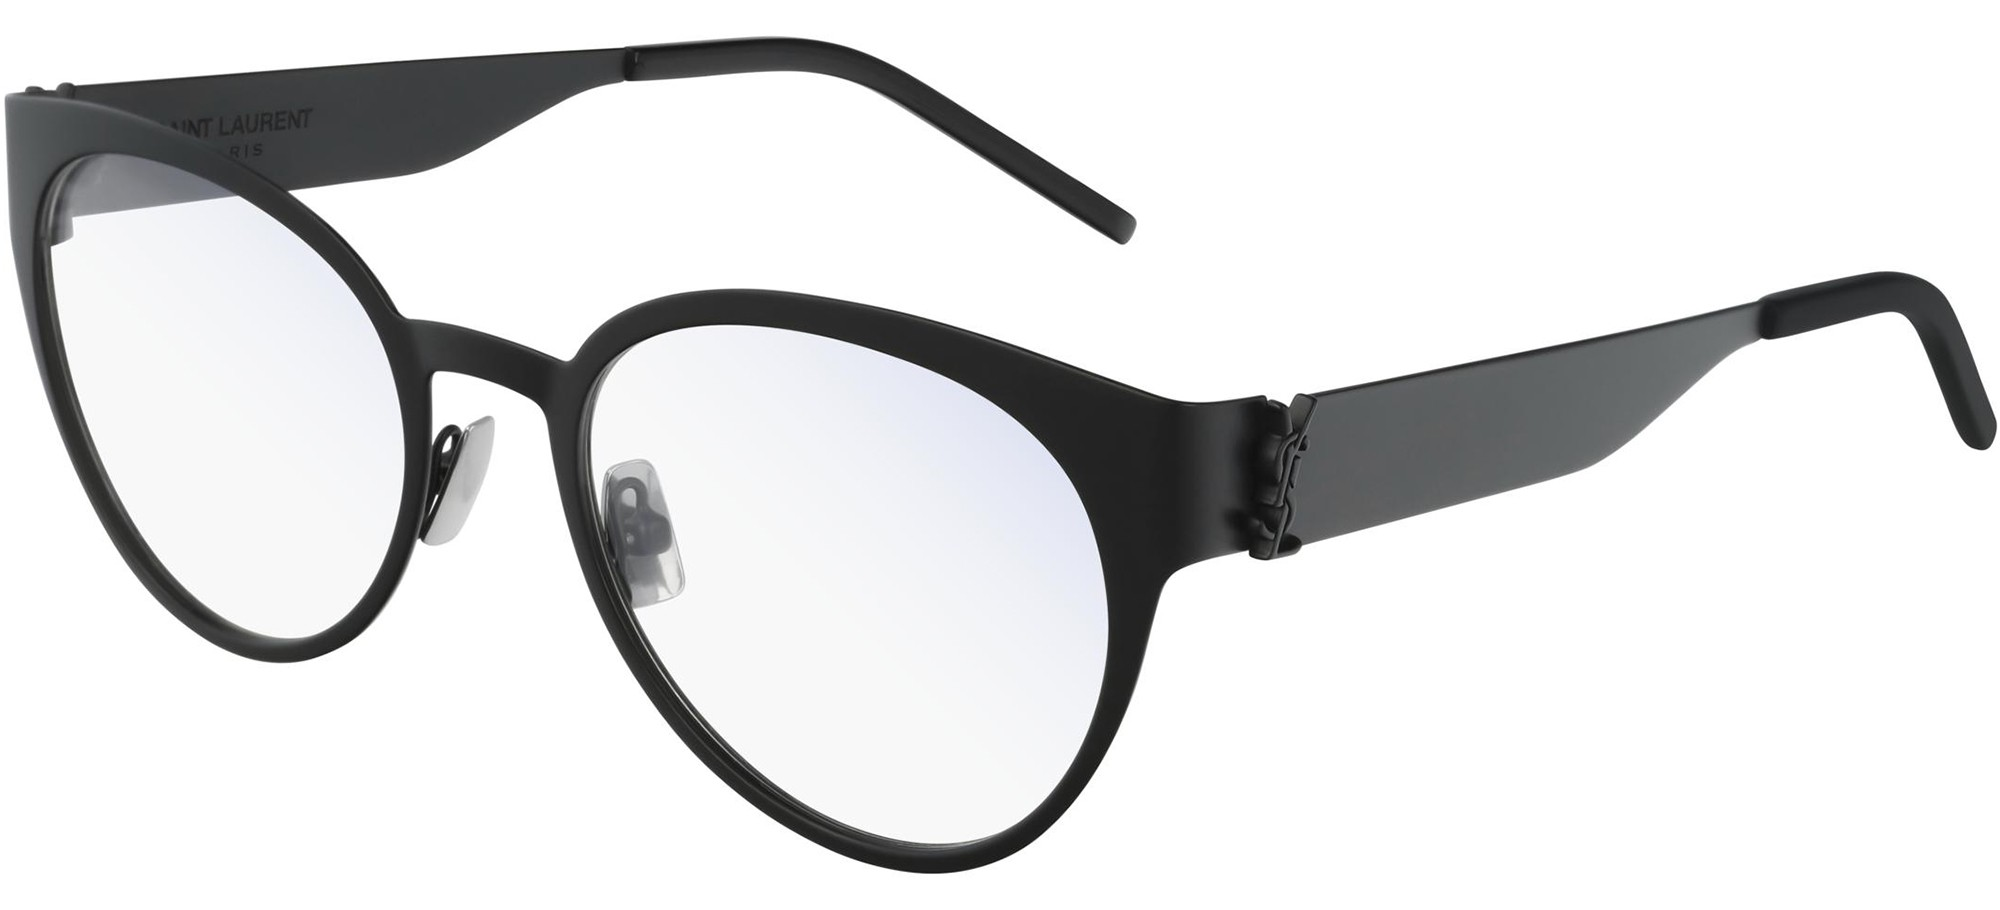 Saint Laurent SL M45